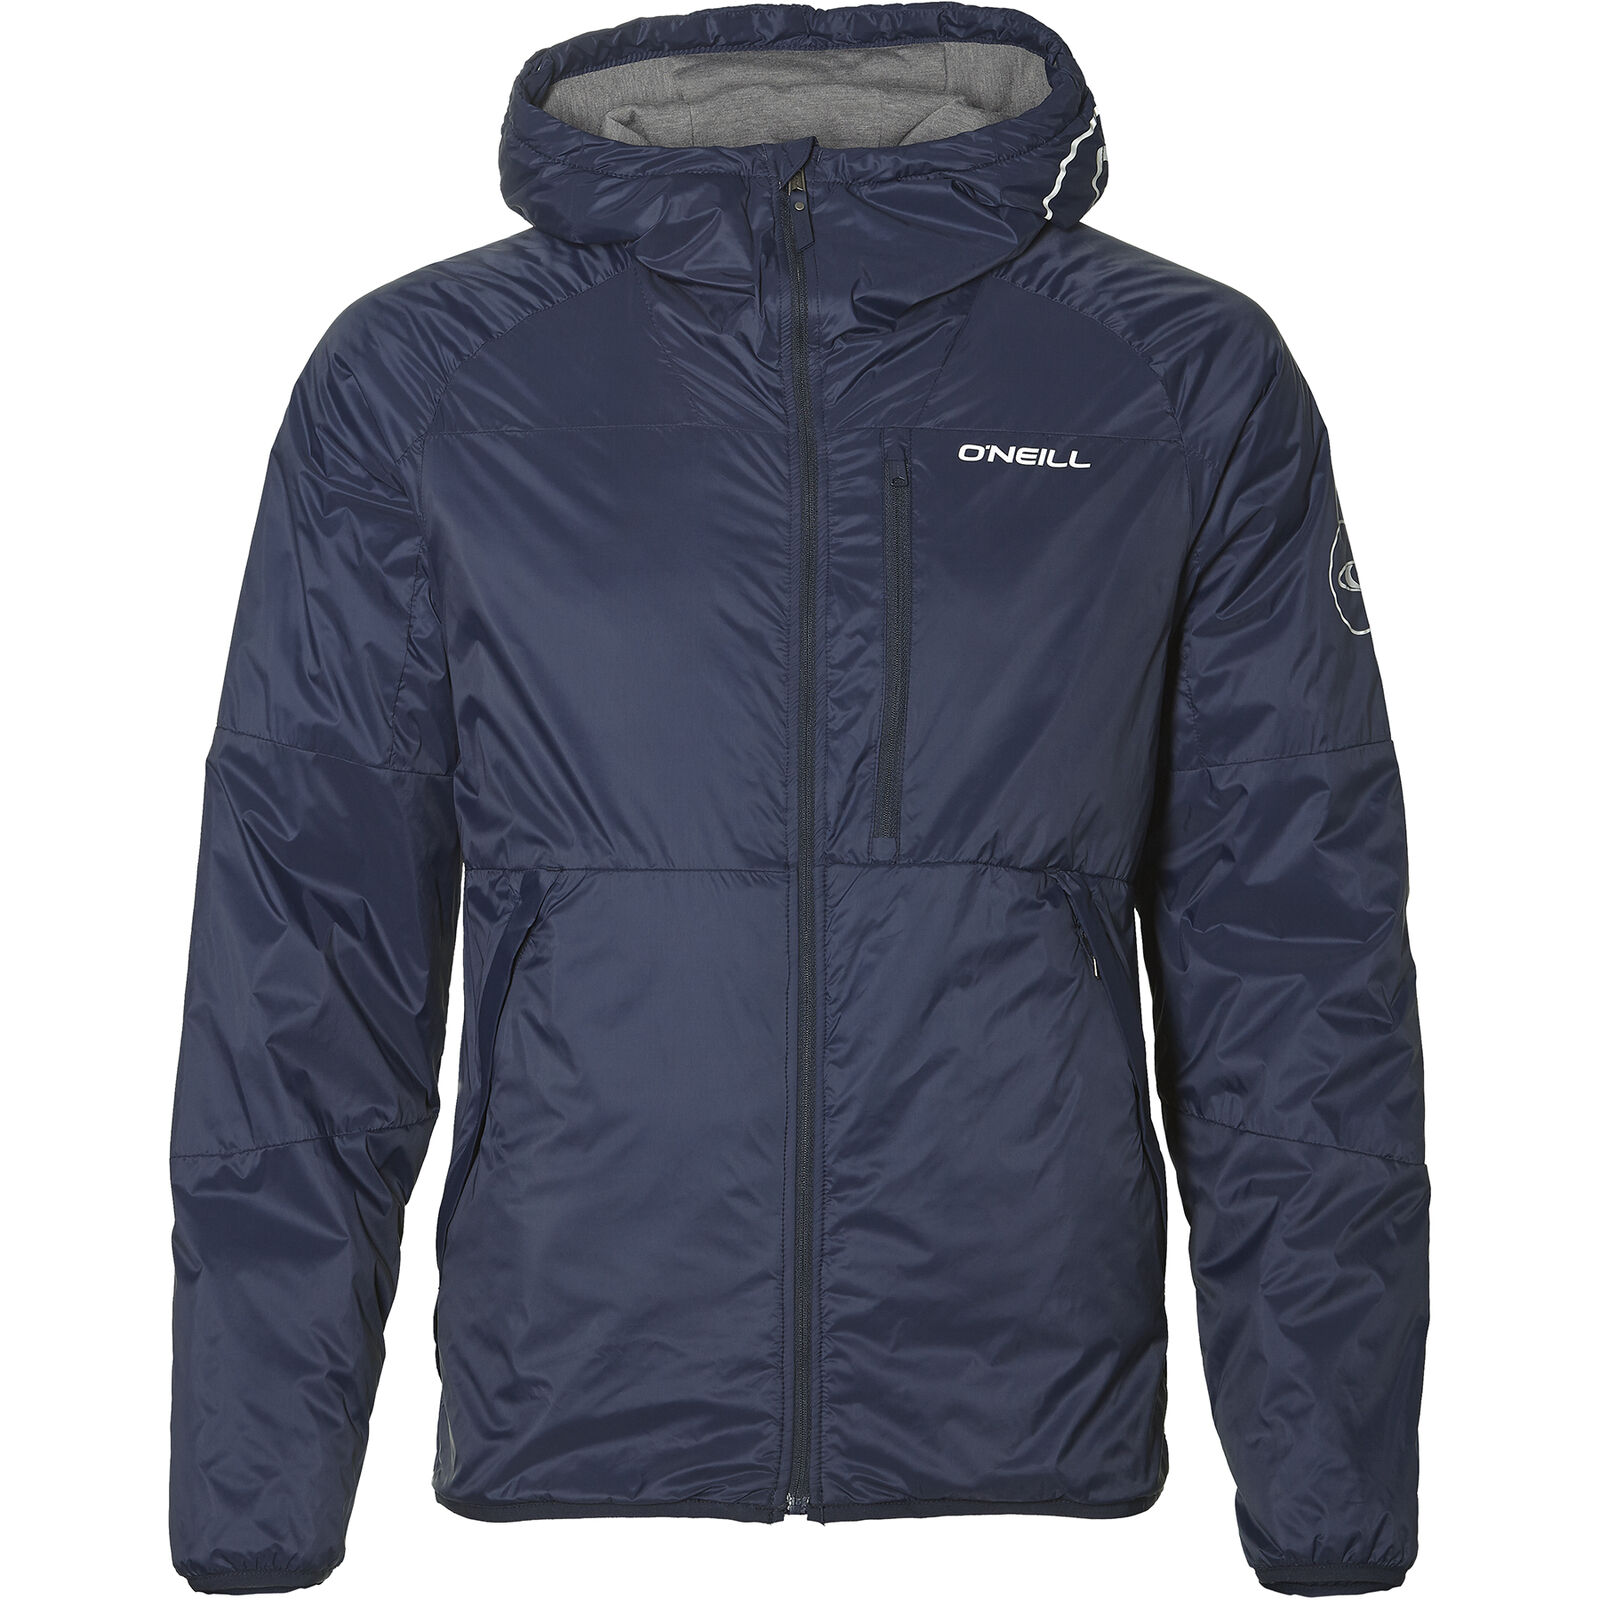 O 'Neill Windbreaker Giacca Windbreaker Blu Scuro Resistente all'acqua